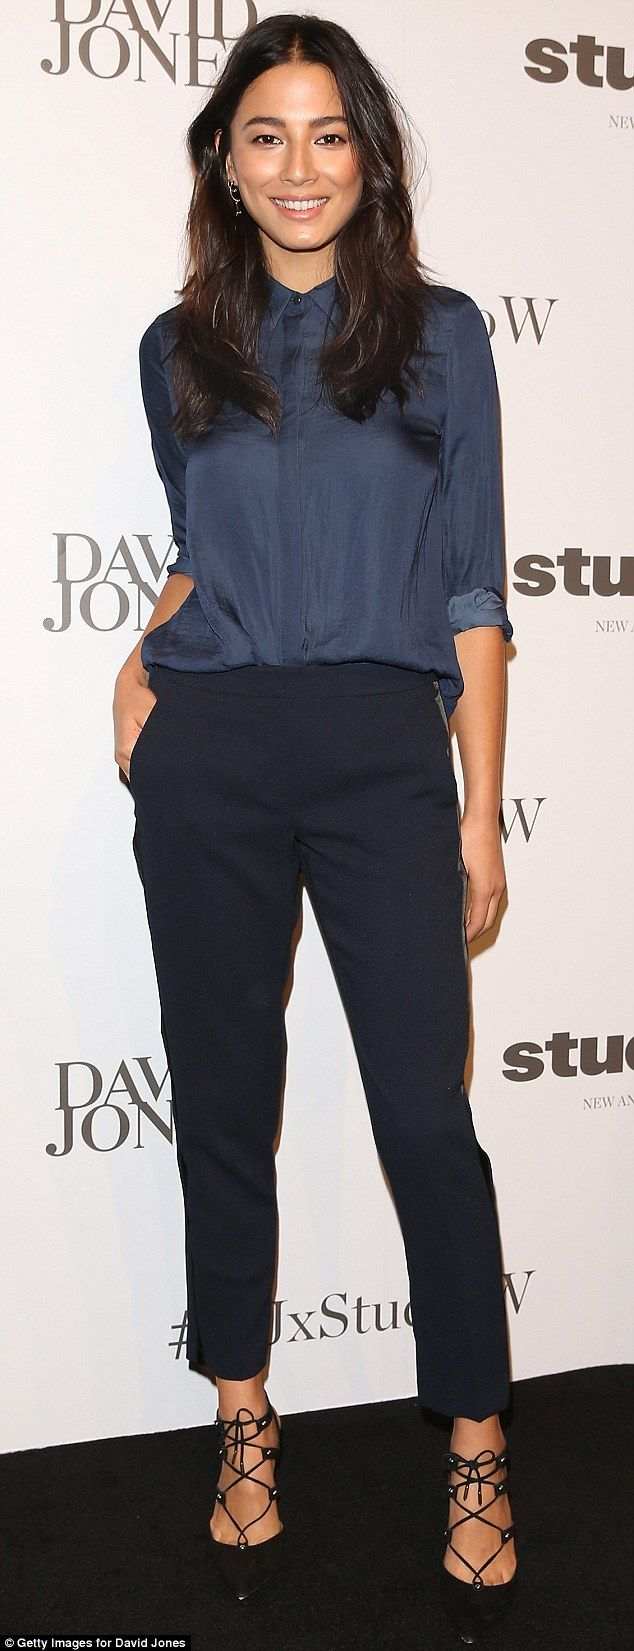 Putting her best foot forward: Jessica Gomes attended the Studio. W launch at David Jones'...